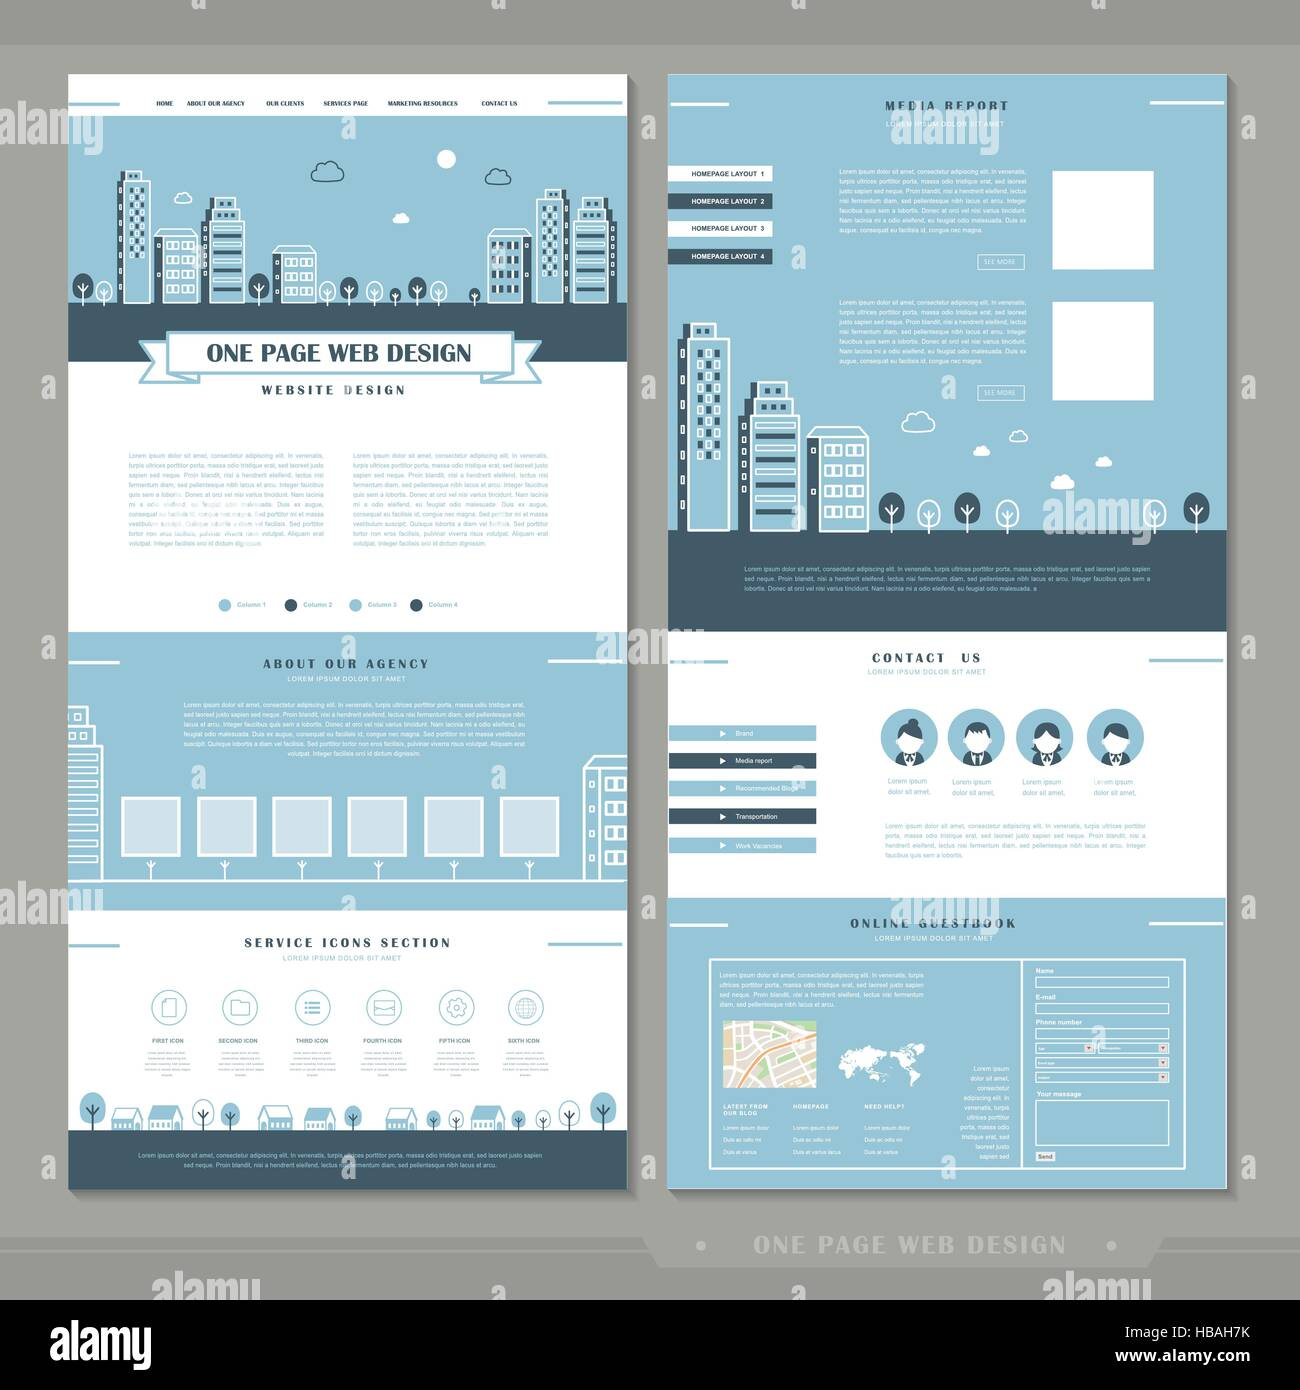 One Page Business Plan Powerpoint Template Slidemodel 15